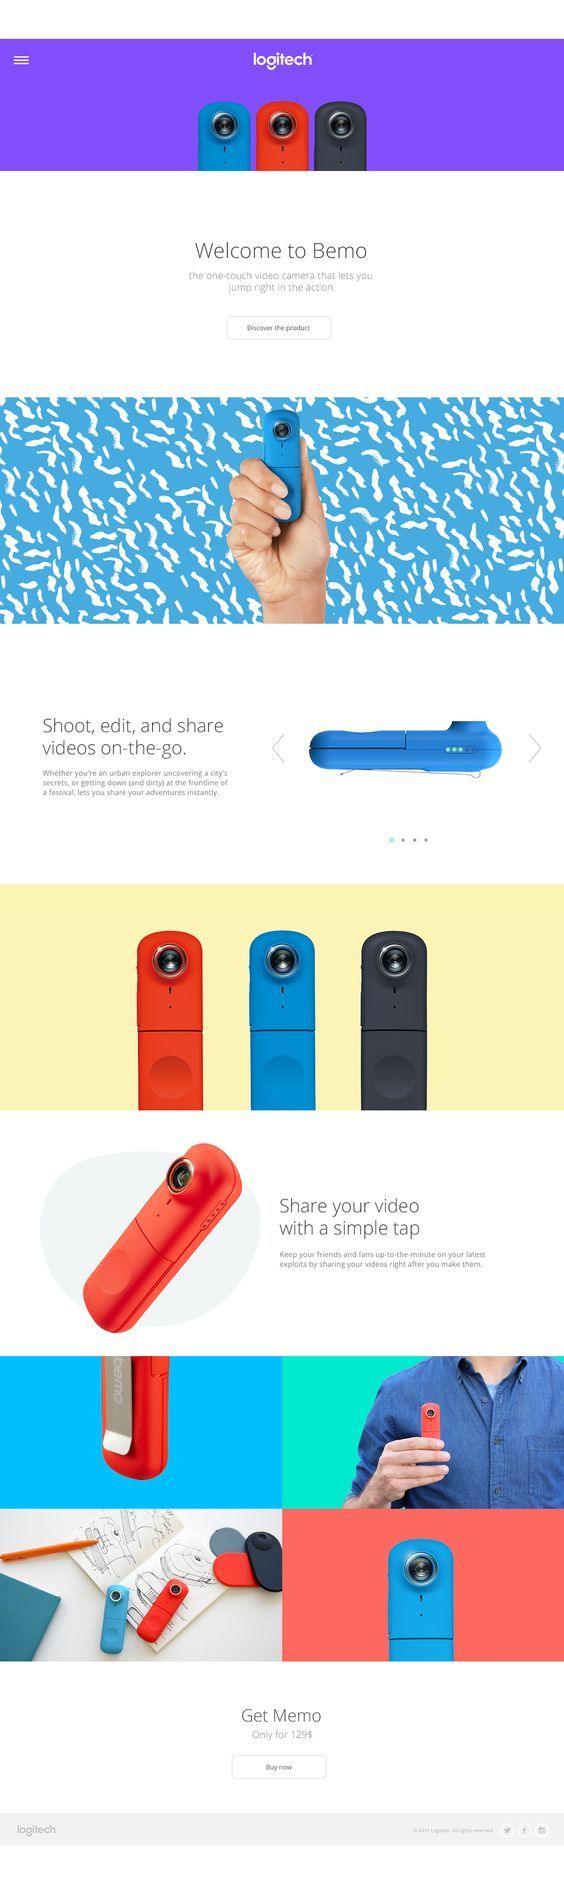 Logitech Site Design | Abduzeedo Design Inspiration: